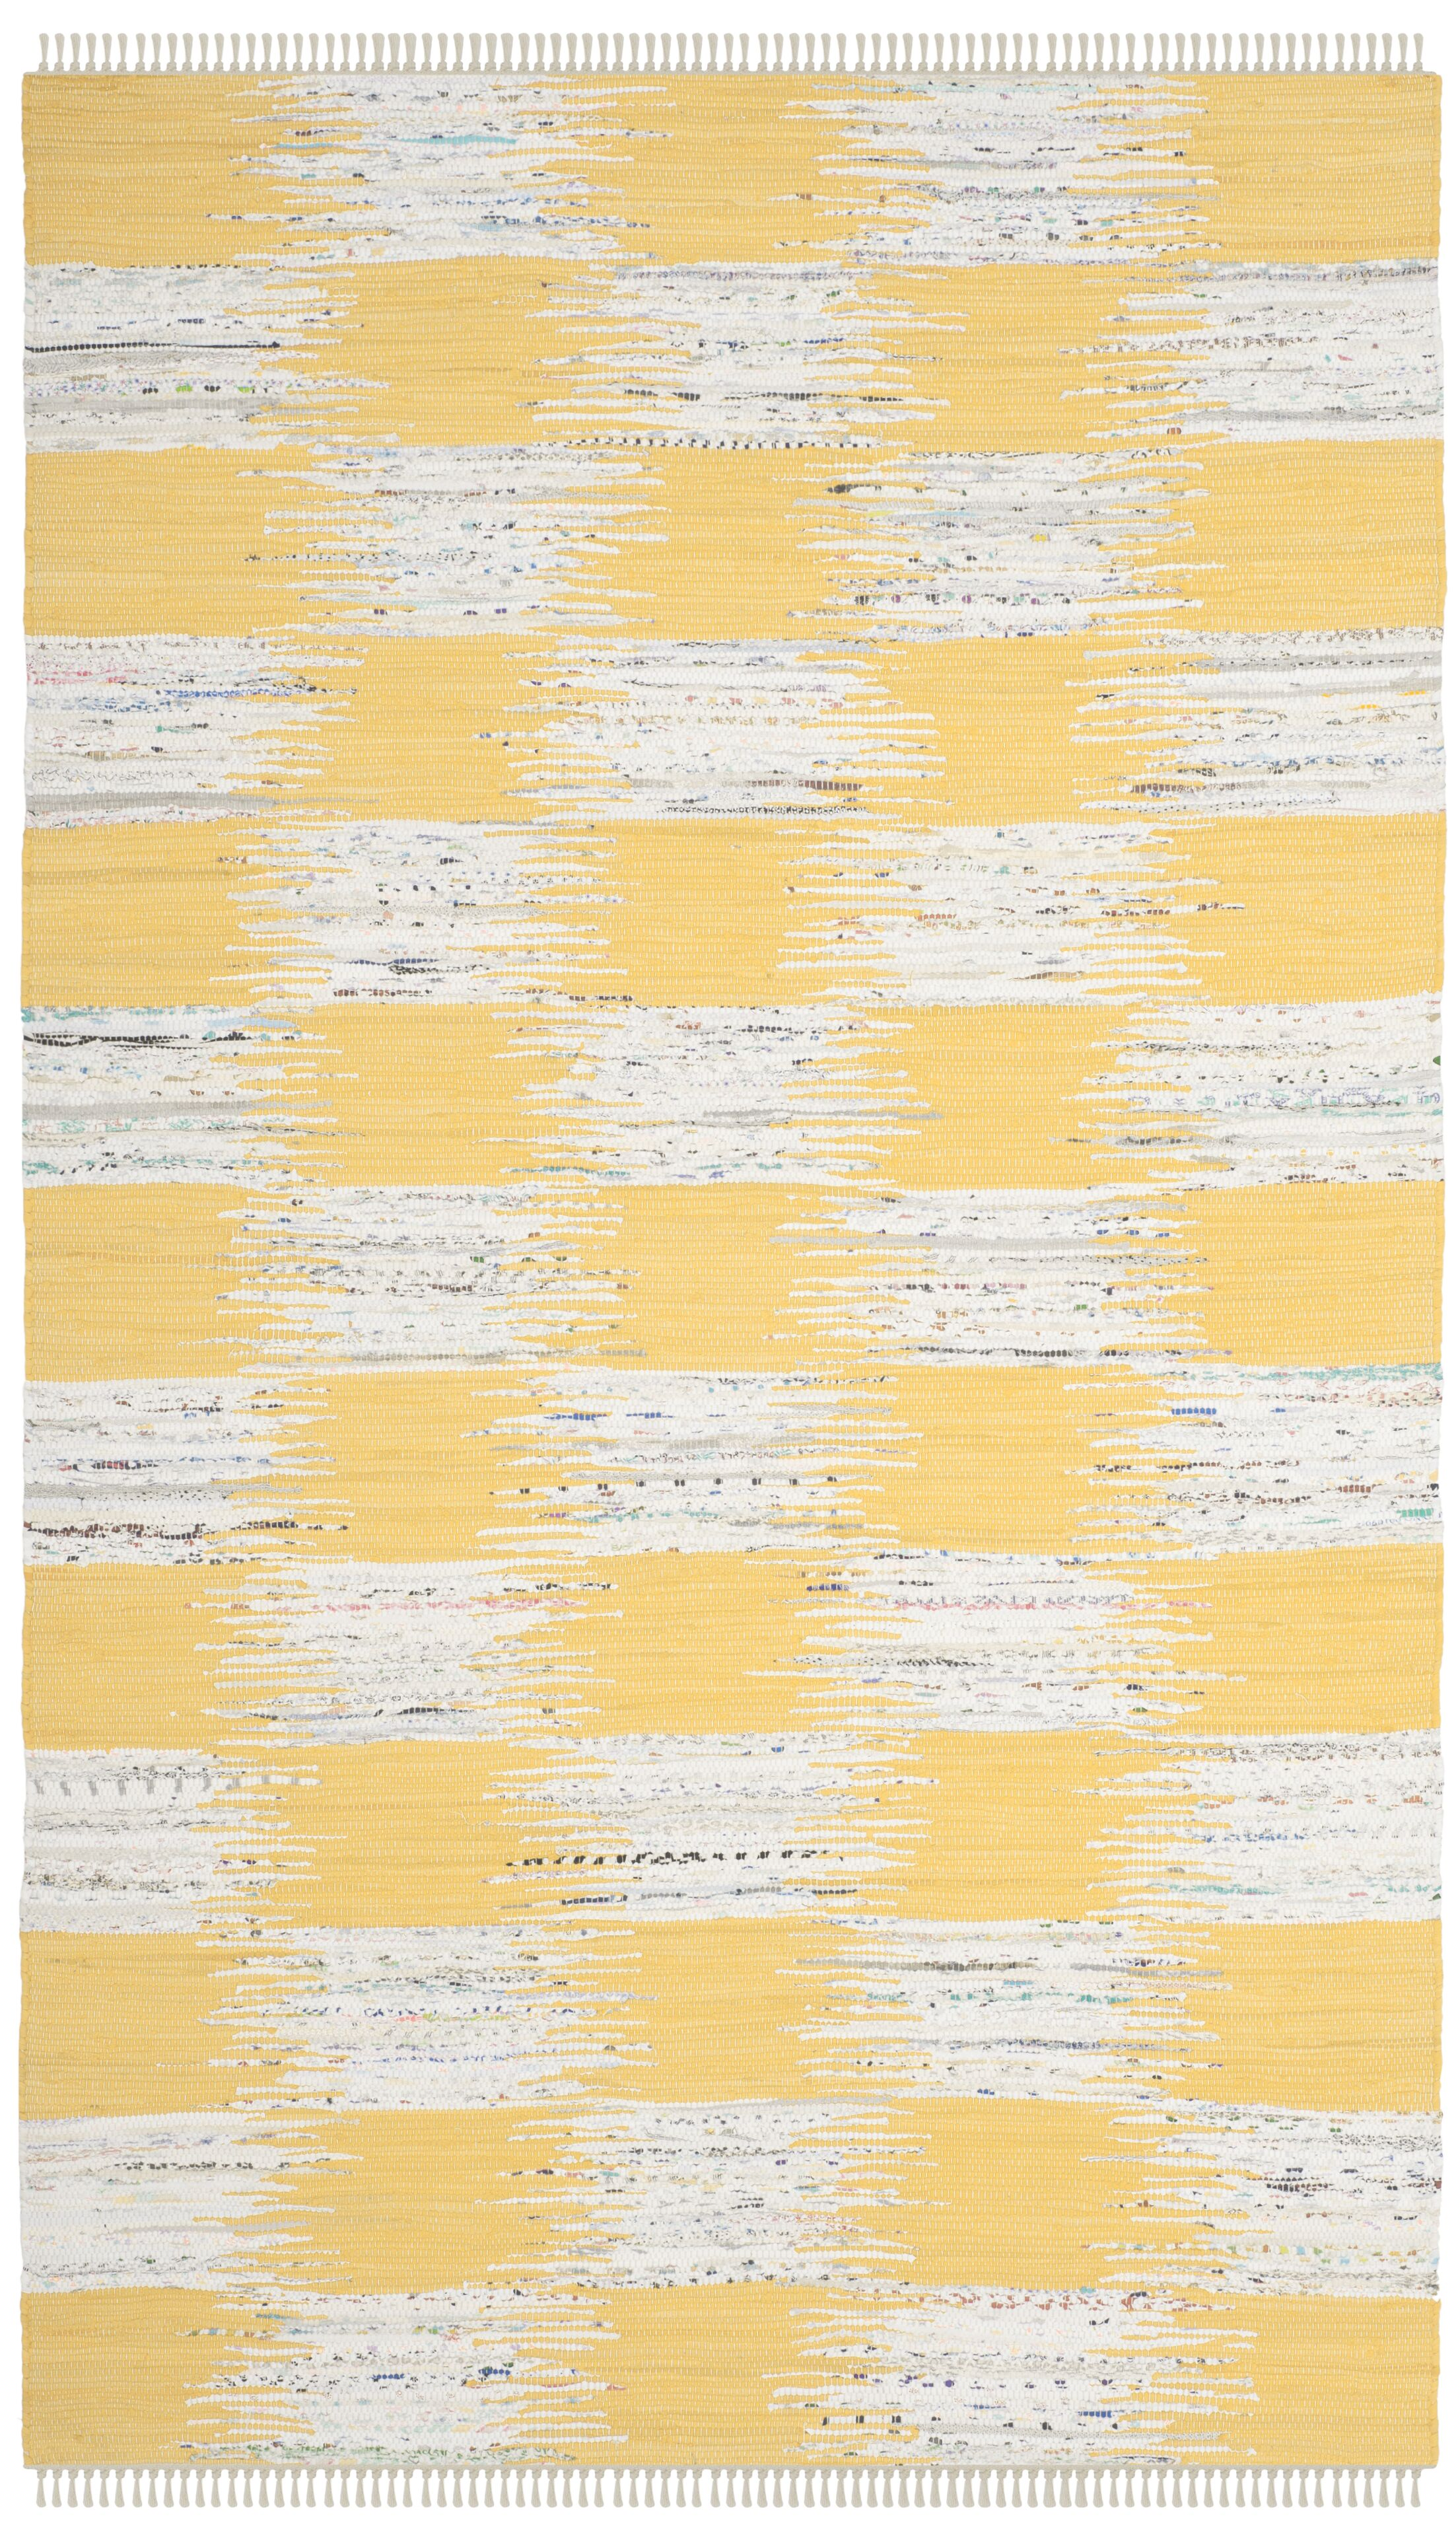 Opie Hand-Woven Yellow/Gray Area Rug Rug Size: Rectangle 8' x 10'